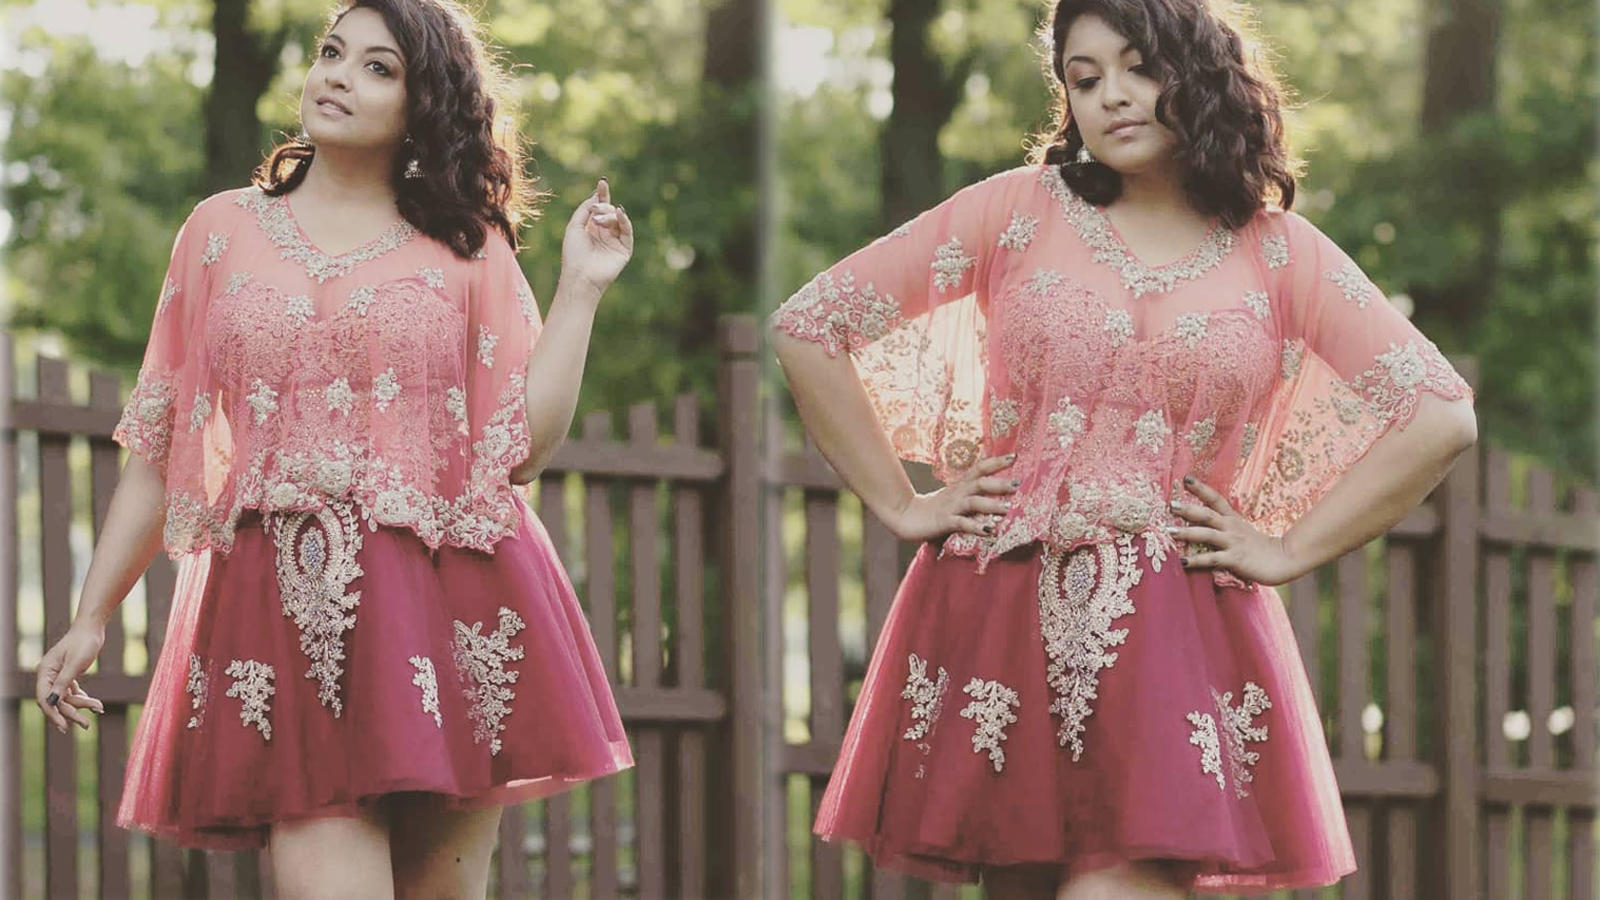 now-tanushree-dutta-says-she-is-actively-looking-for-a-fresh-start-in-bollywood